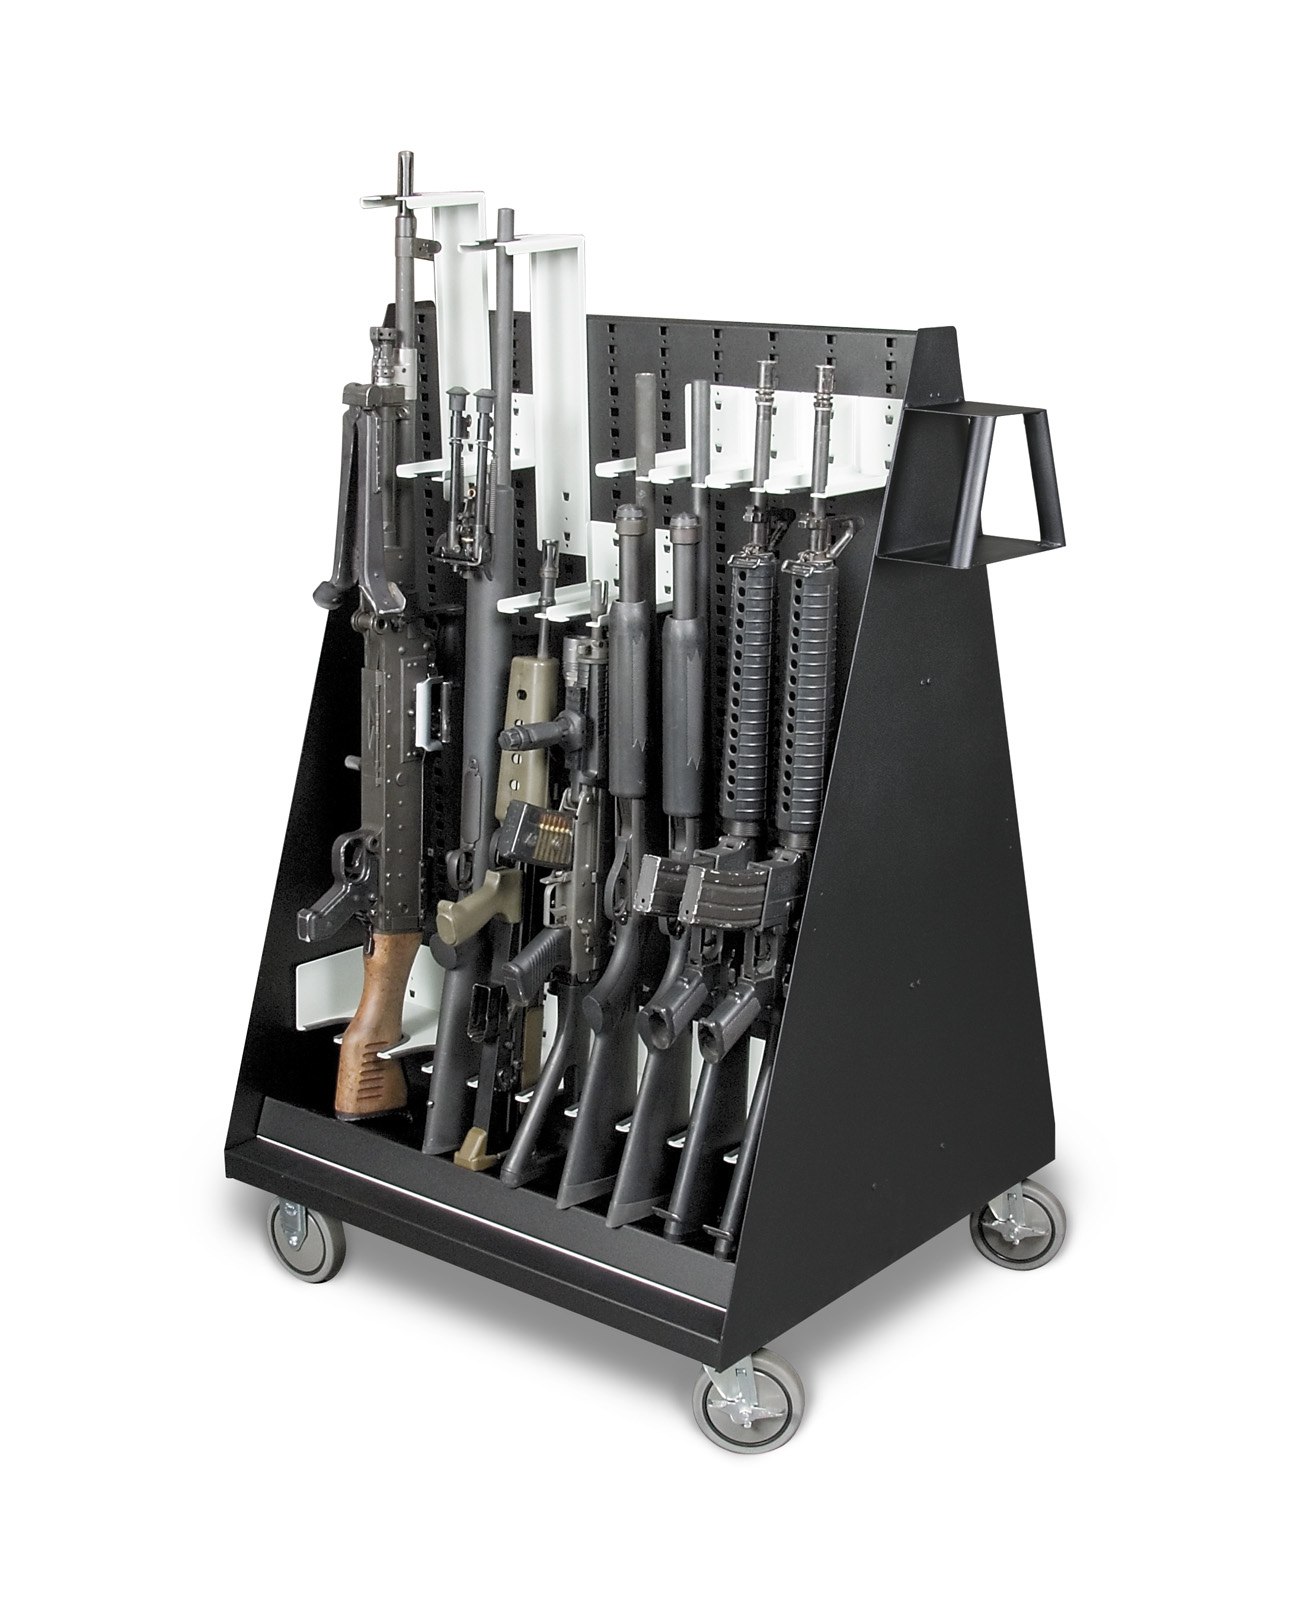 Mobile Weapon Storage Cart - Full